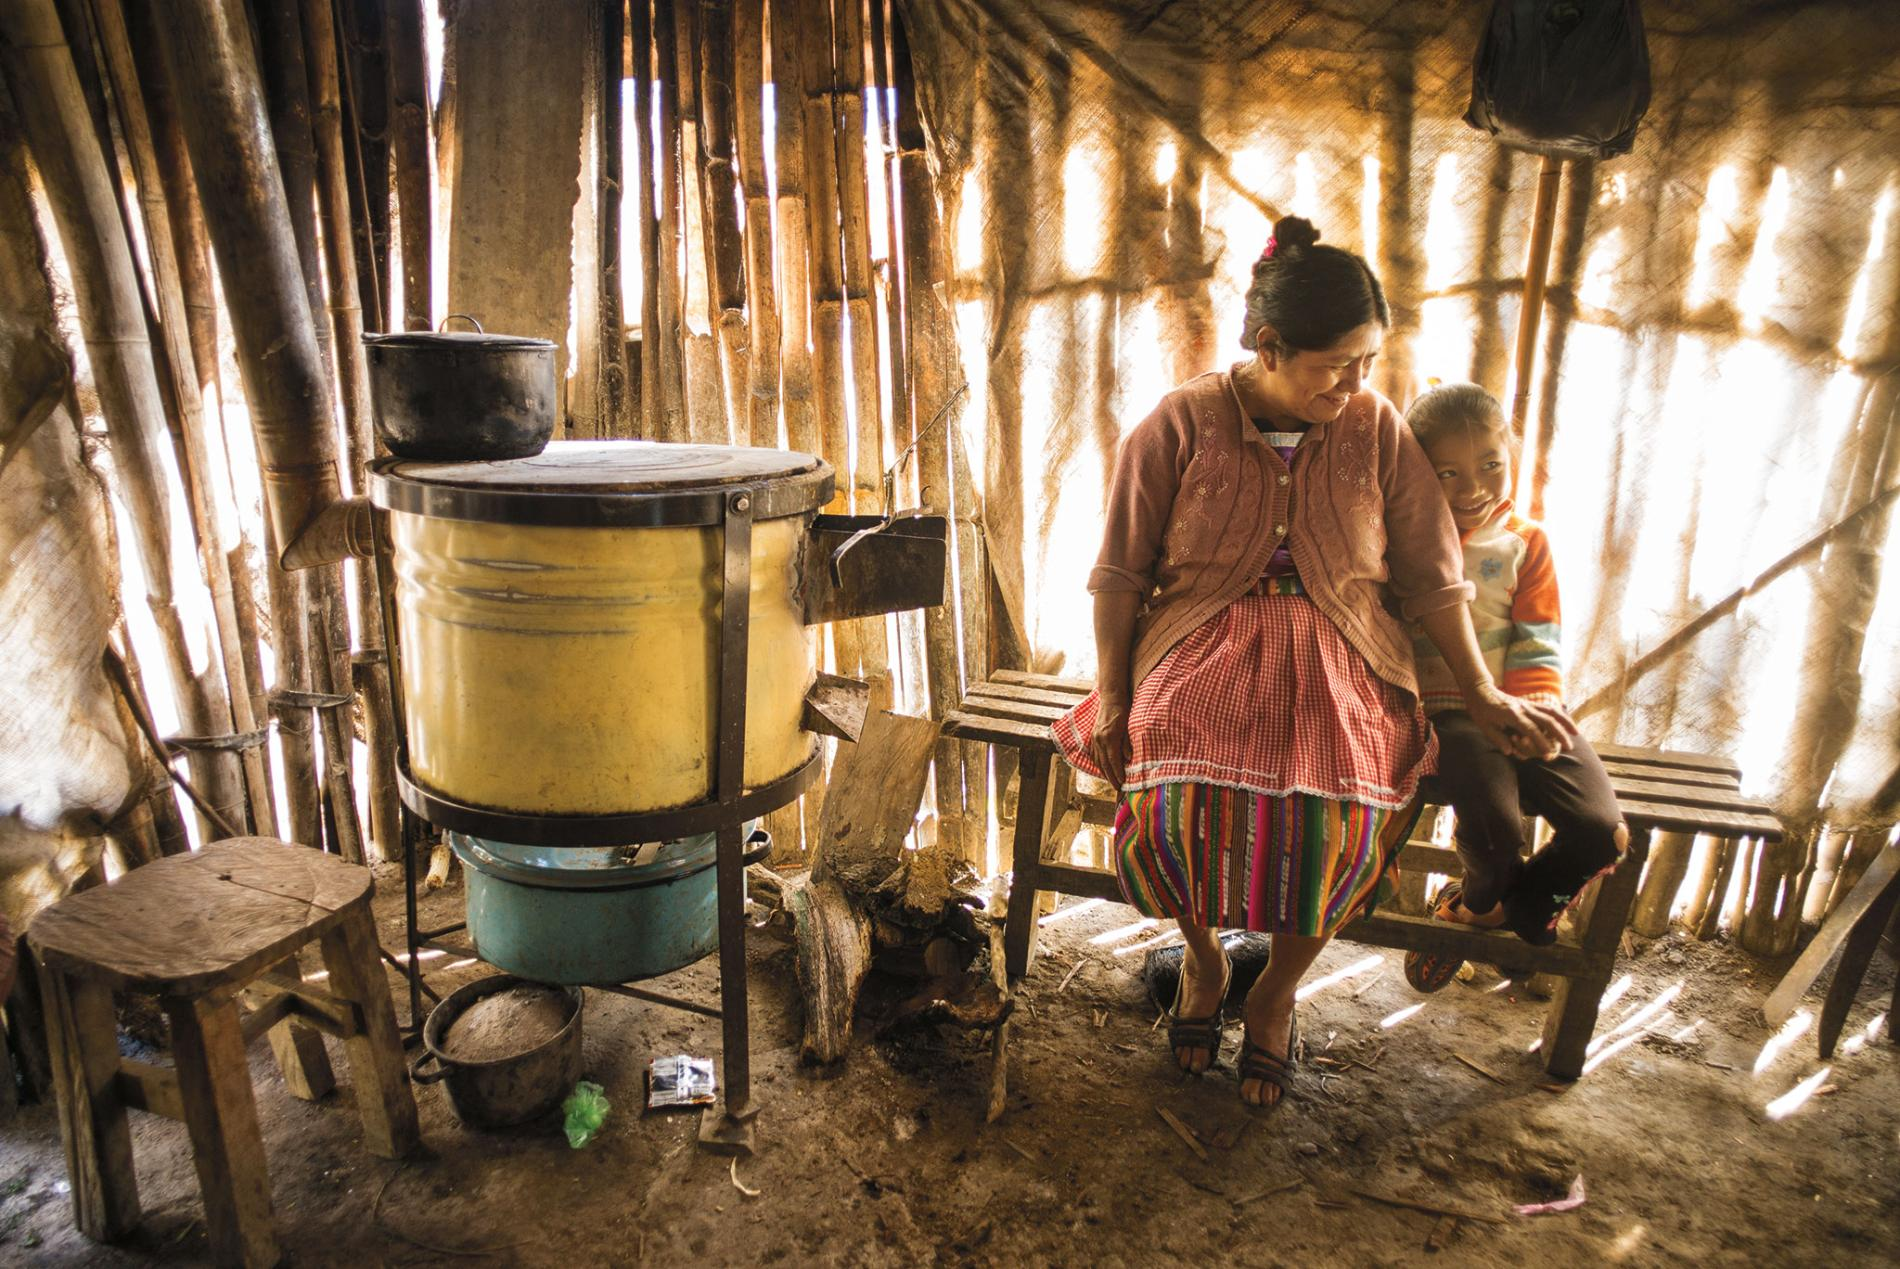 Cooking Up Pollution The Health Crisis Of Open Fires And Leaky Stoves